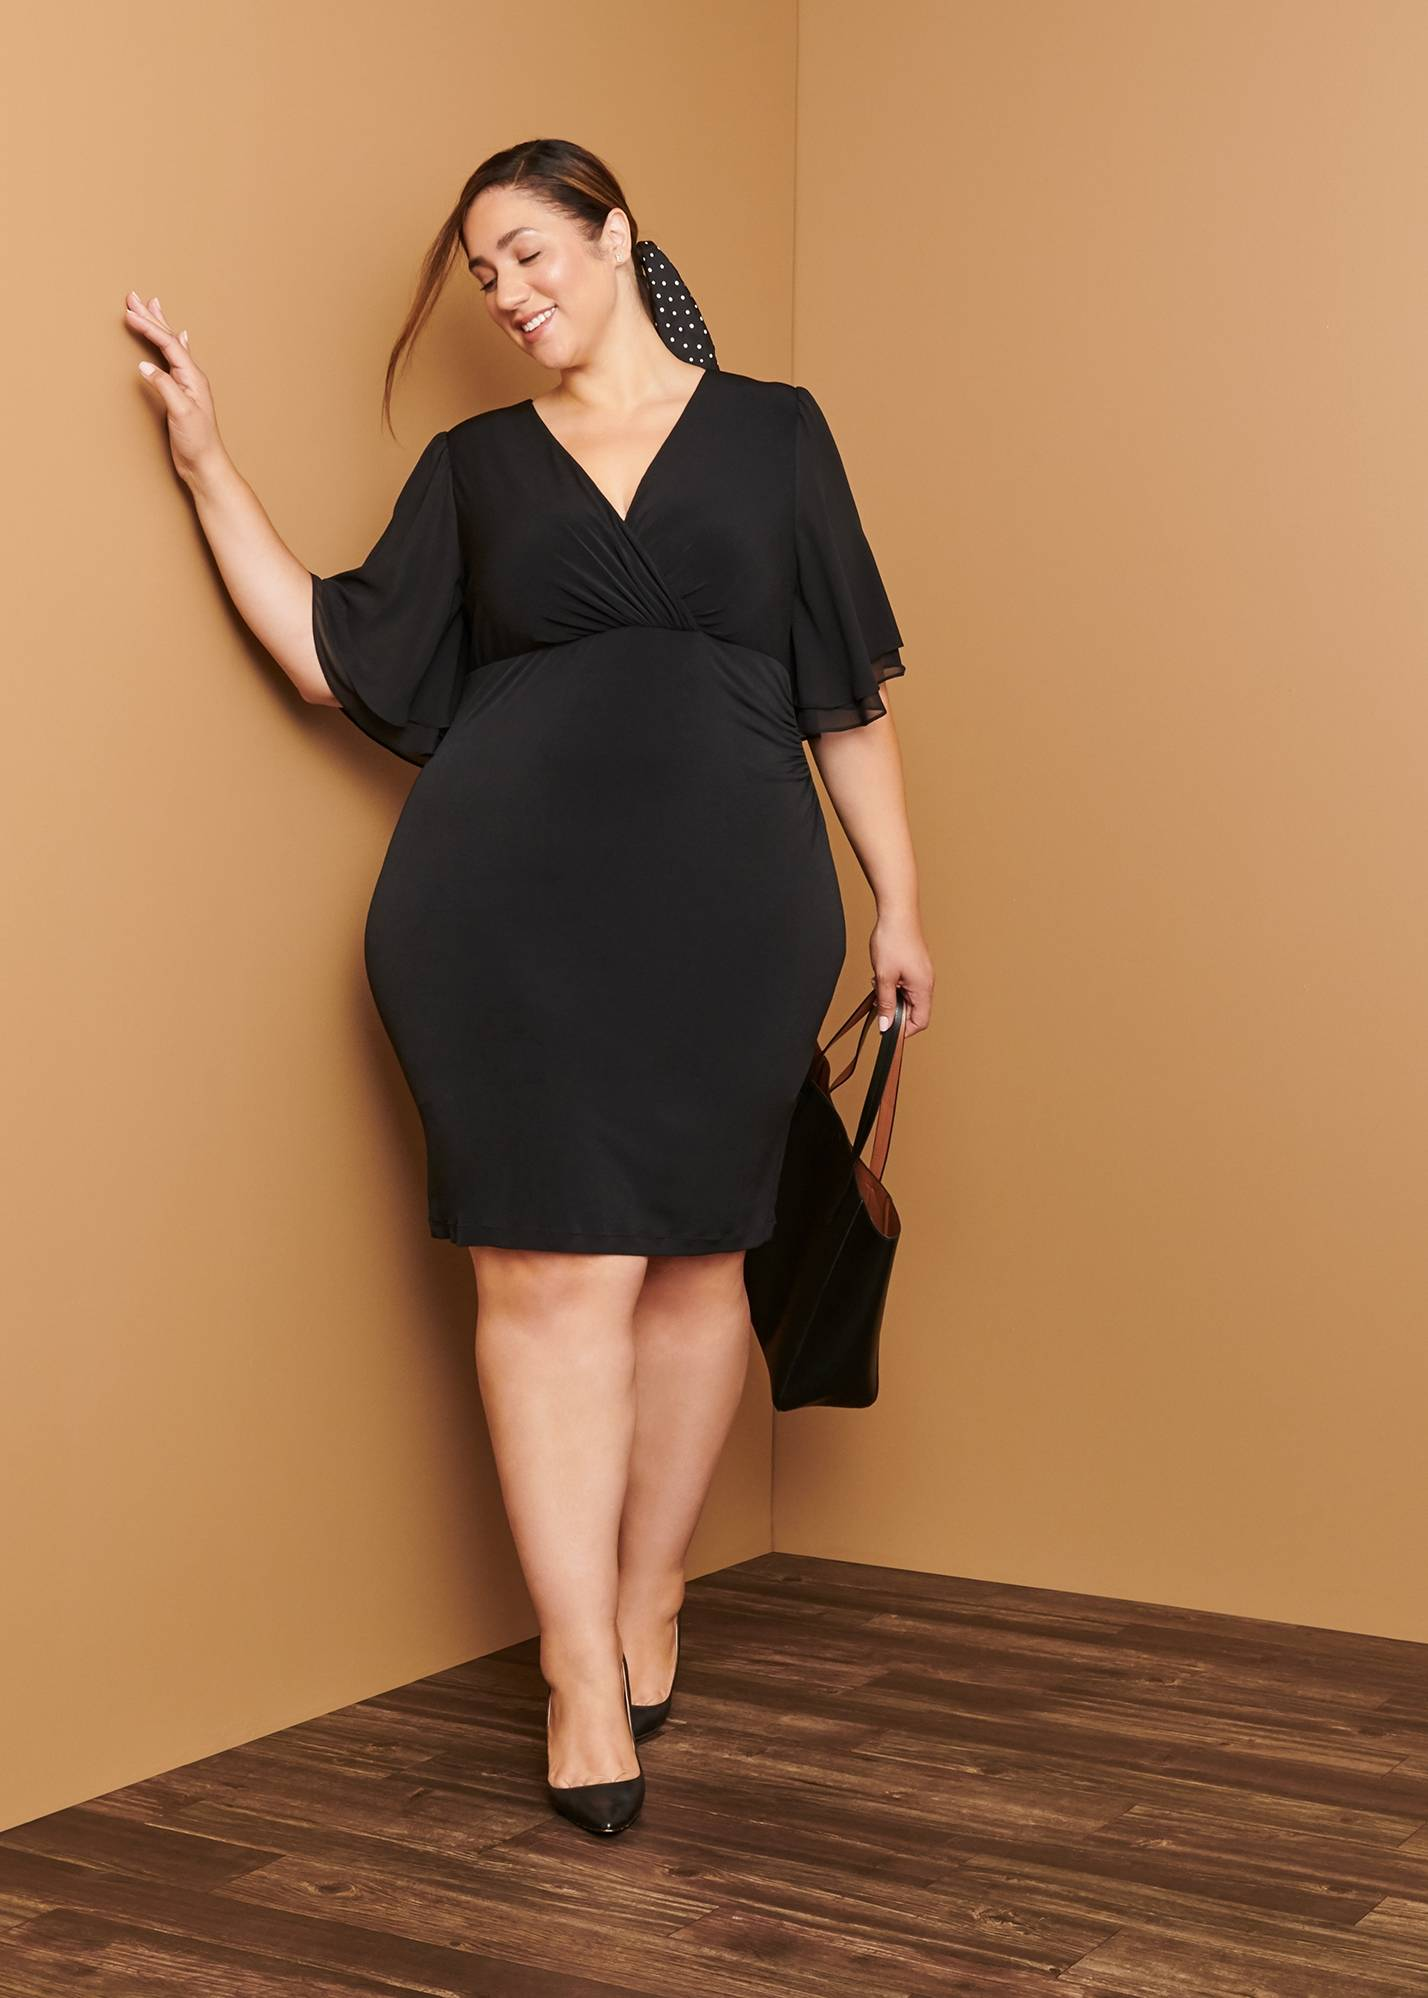 plus size woman in black bat wing sleeve work dress on day to night connected apparel blog